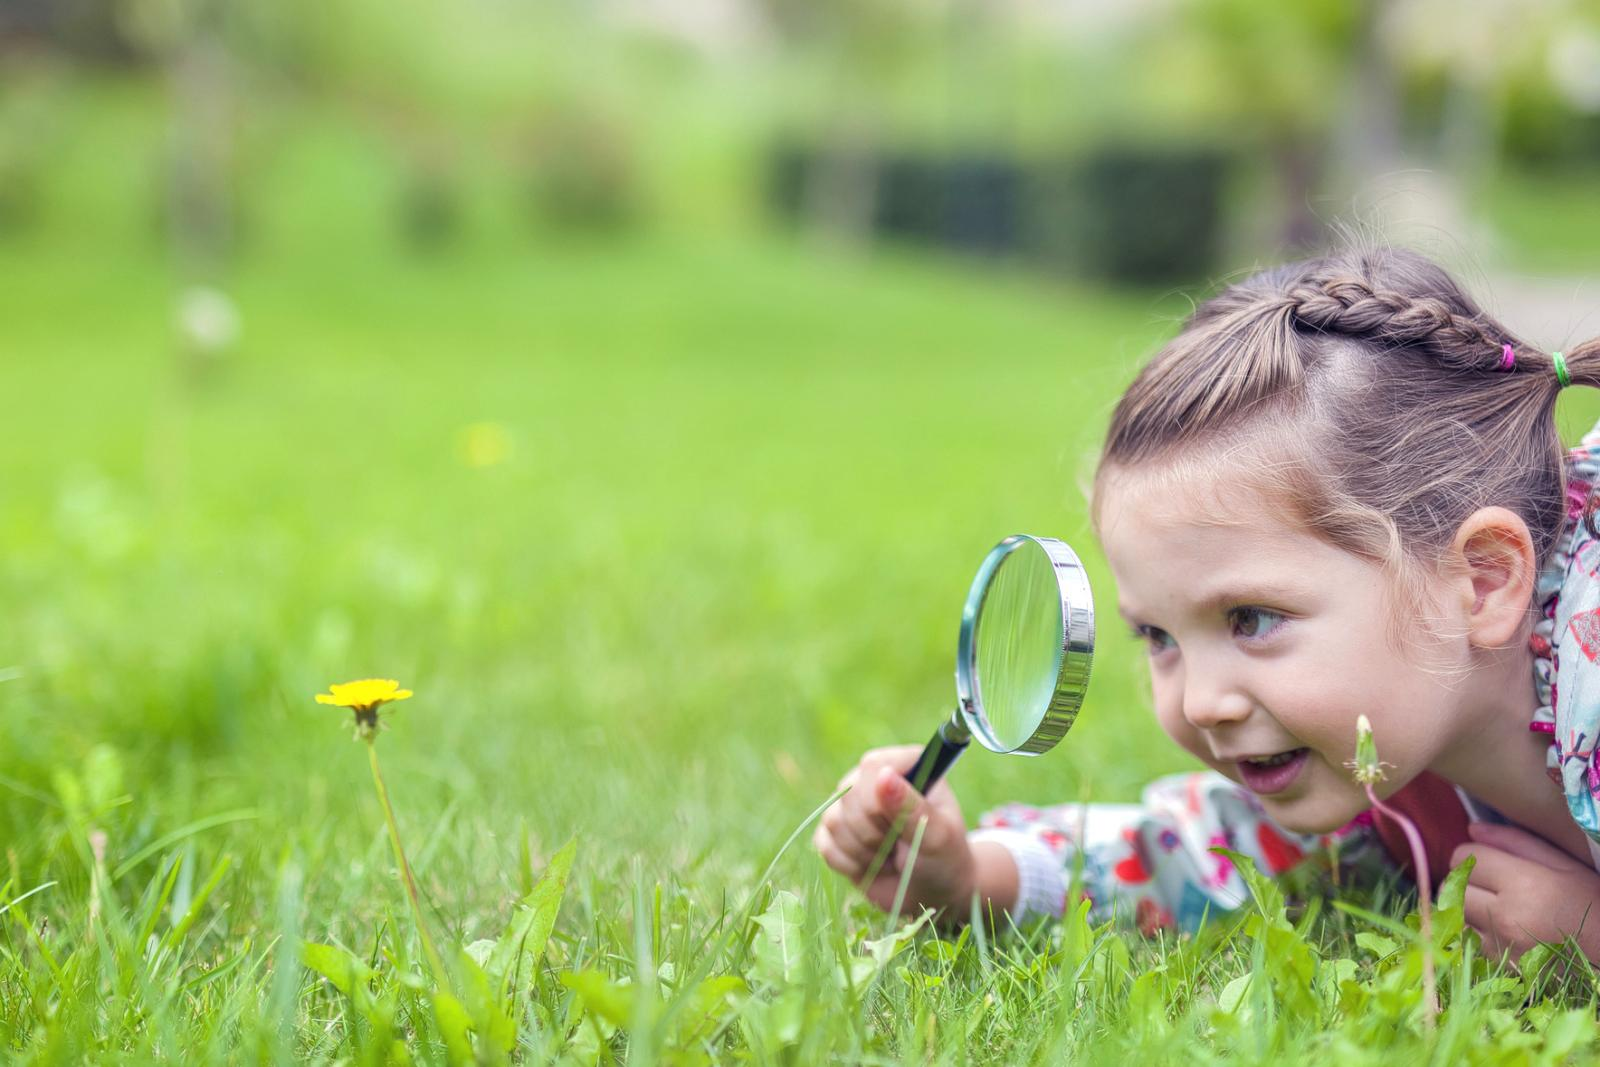 Girl with magnifying glass examining flower